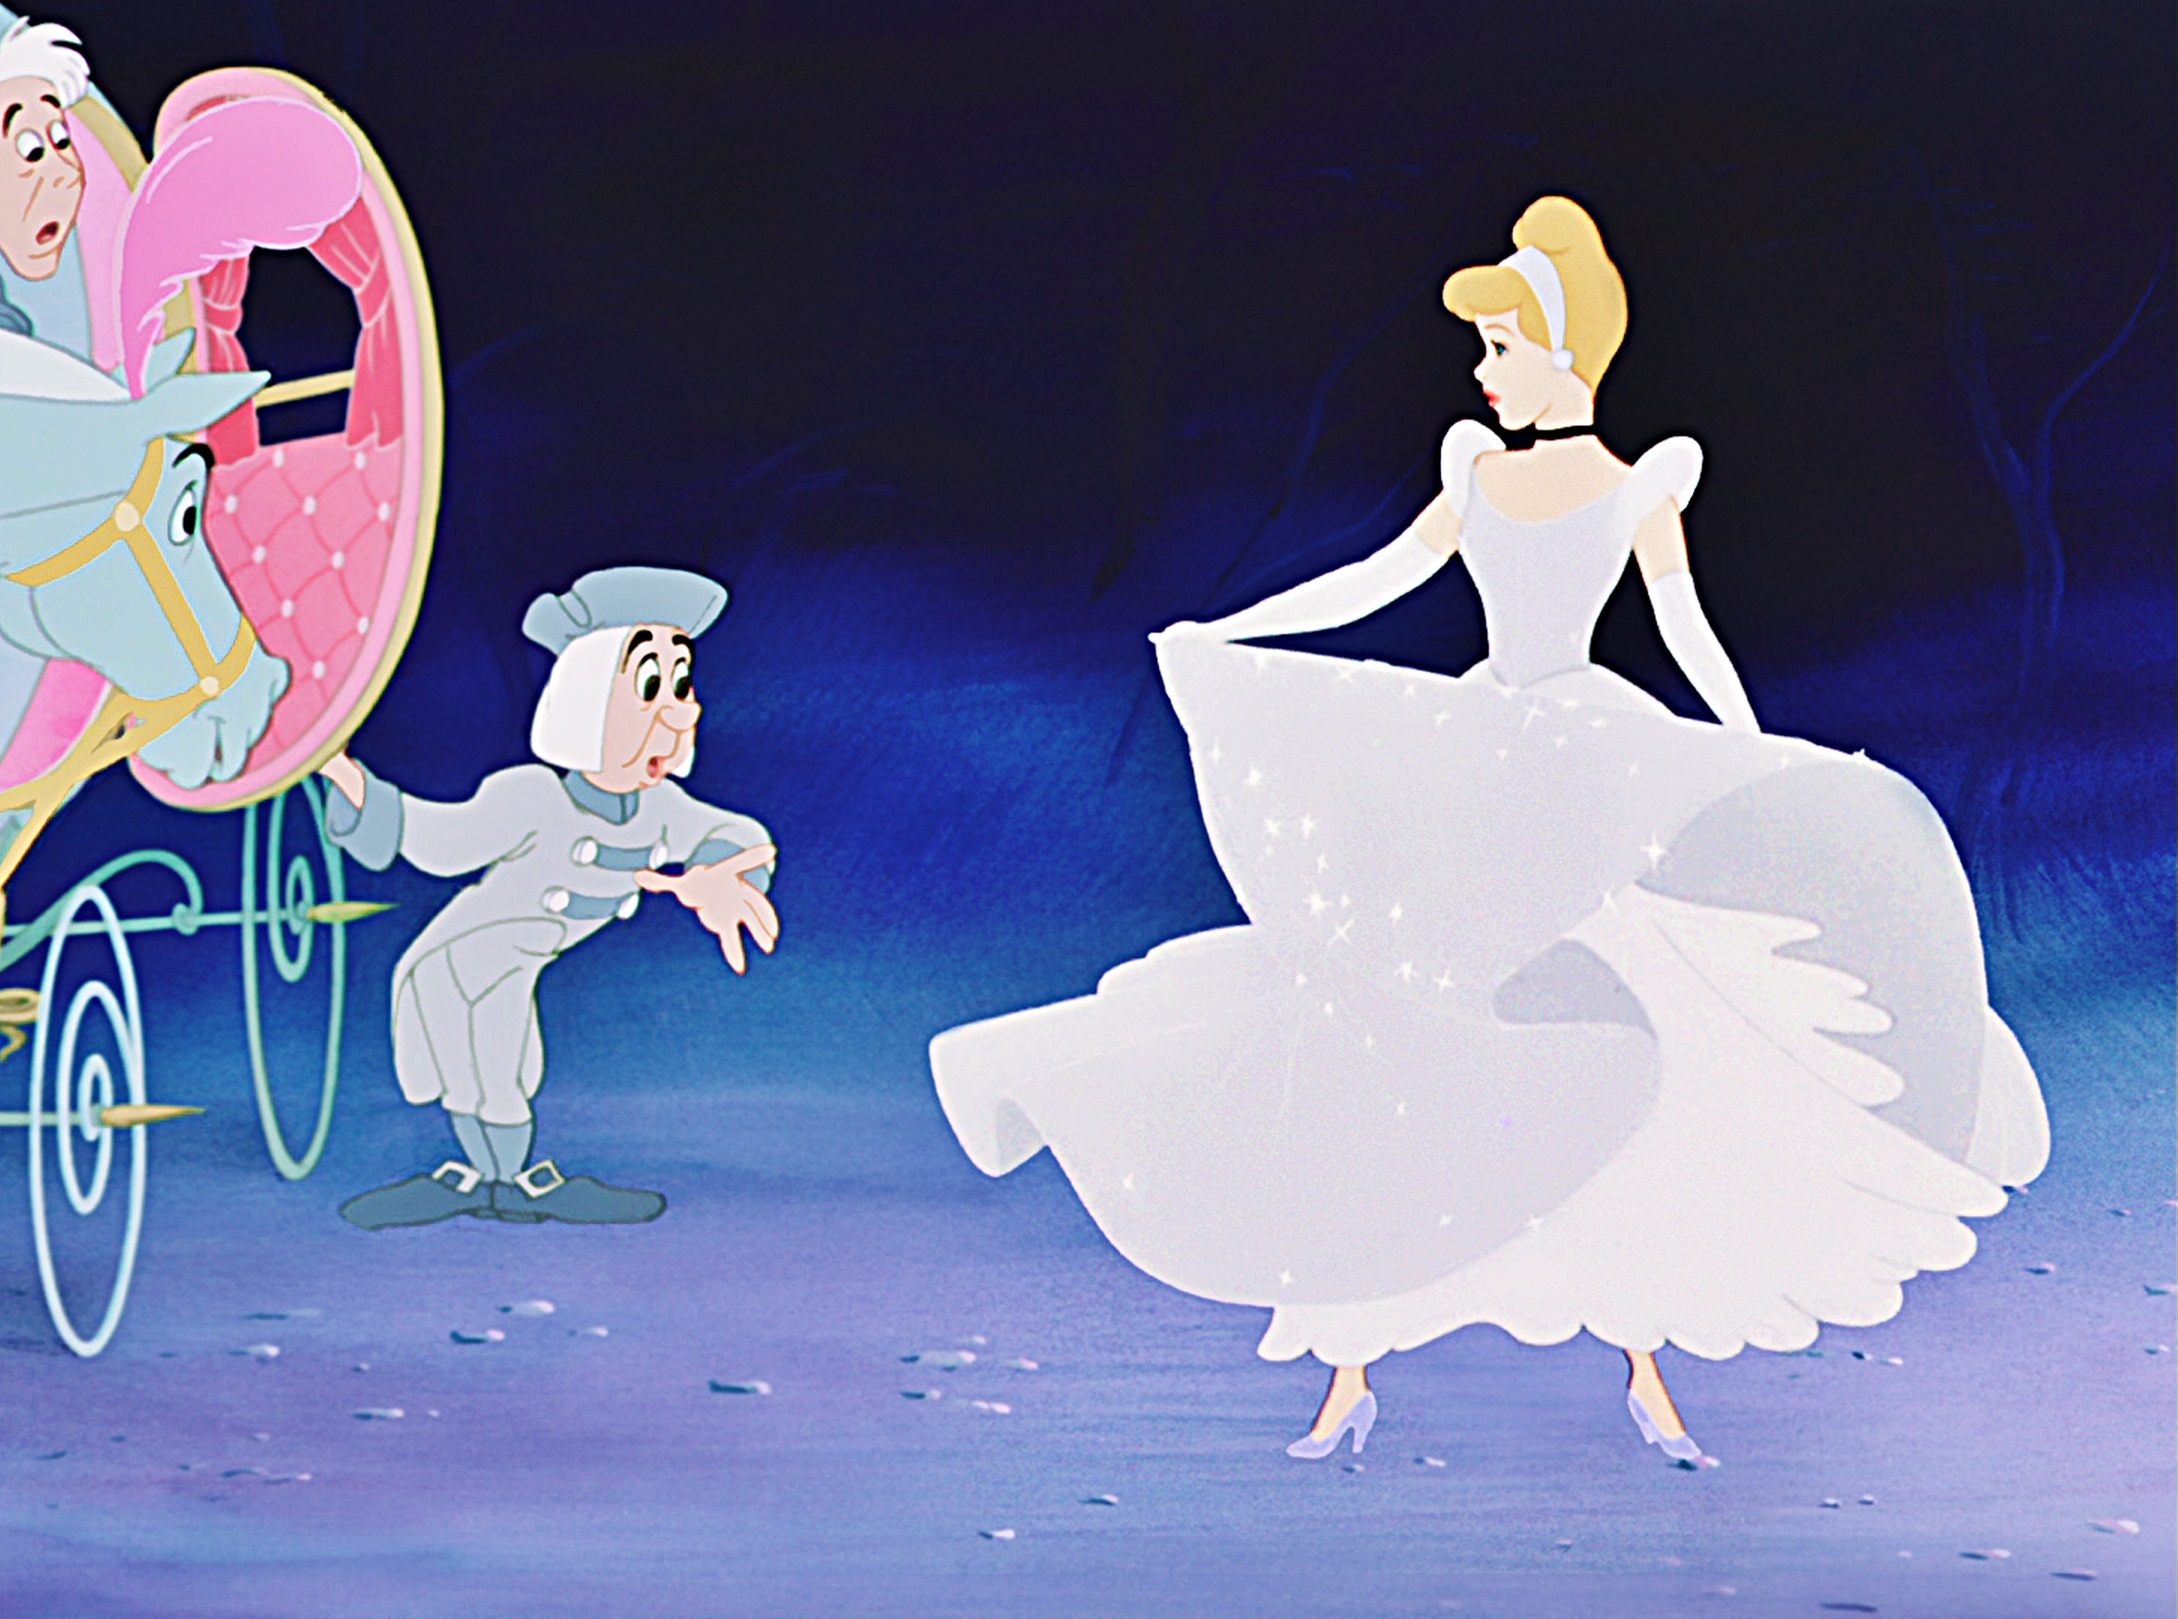 The Animated Cinderella's